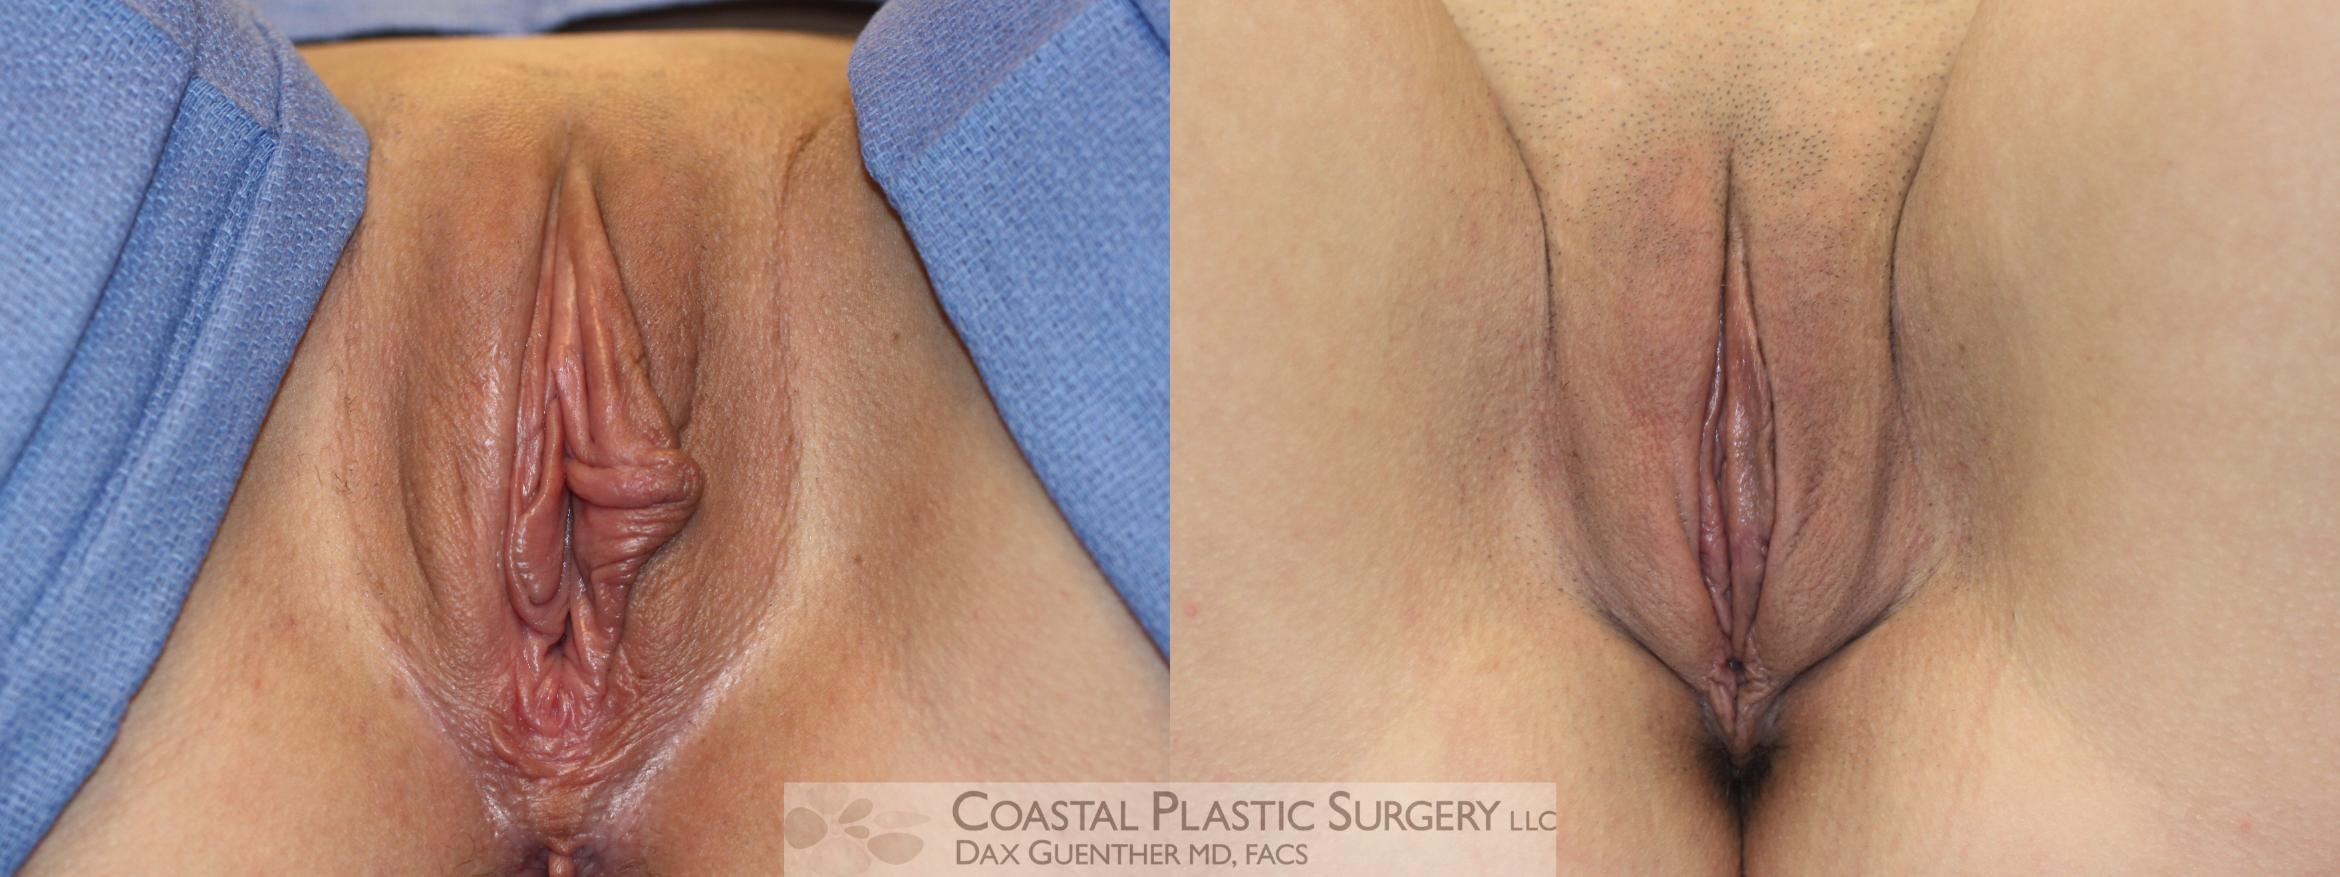 Labiaplasty Before & After Photo | Hingham, Boston & Nantucket, MA | Dax Guenther, MD: Coastal Plastic Surgery